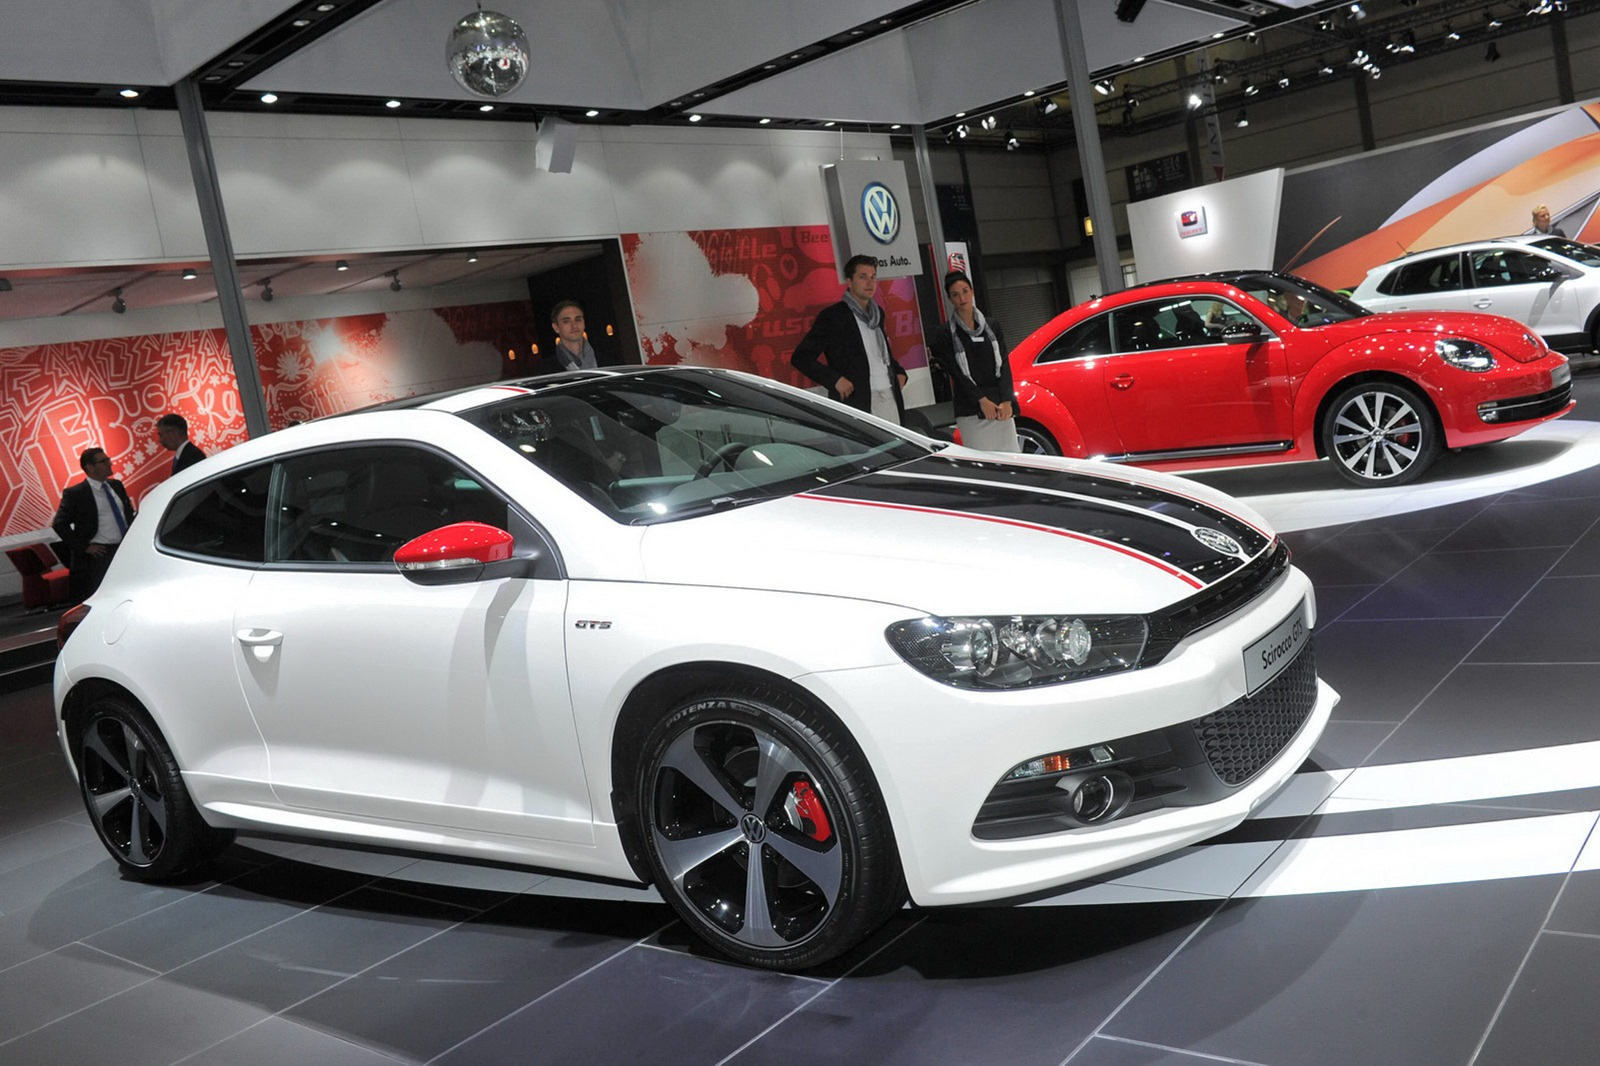 file volkswagen scirocco gts at ami wikimedia commons. Black Bedroom Furniture Sets. Home Design Ideas